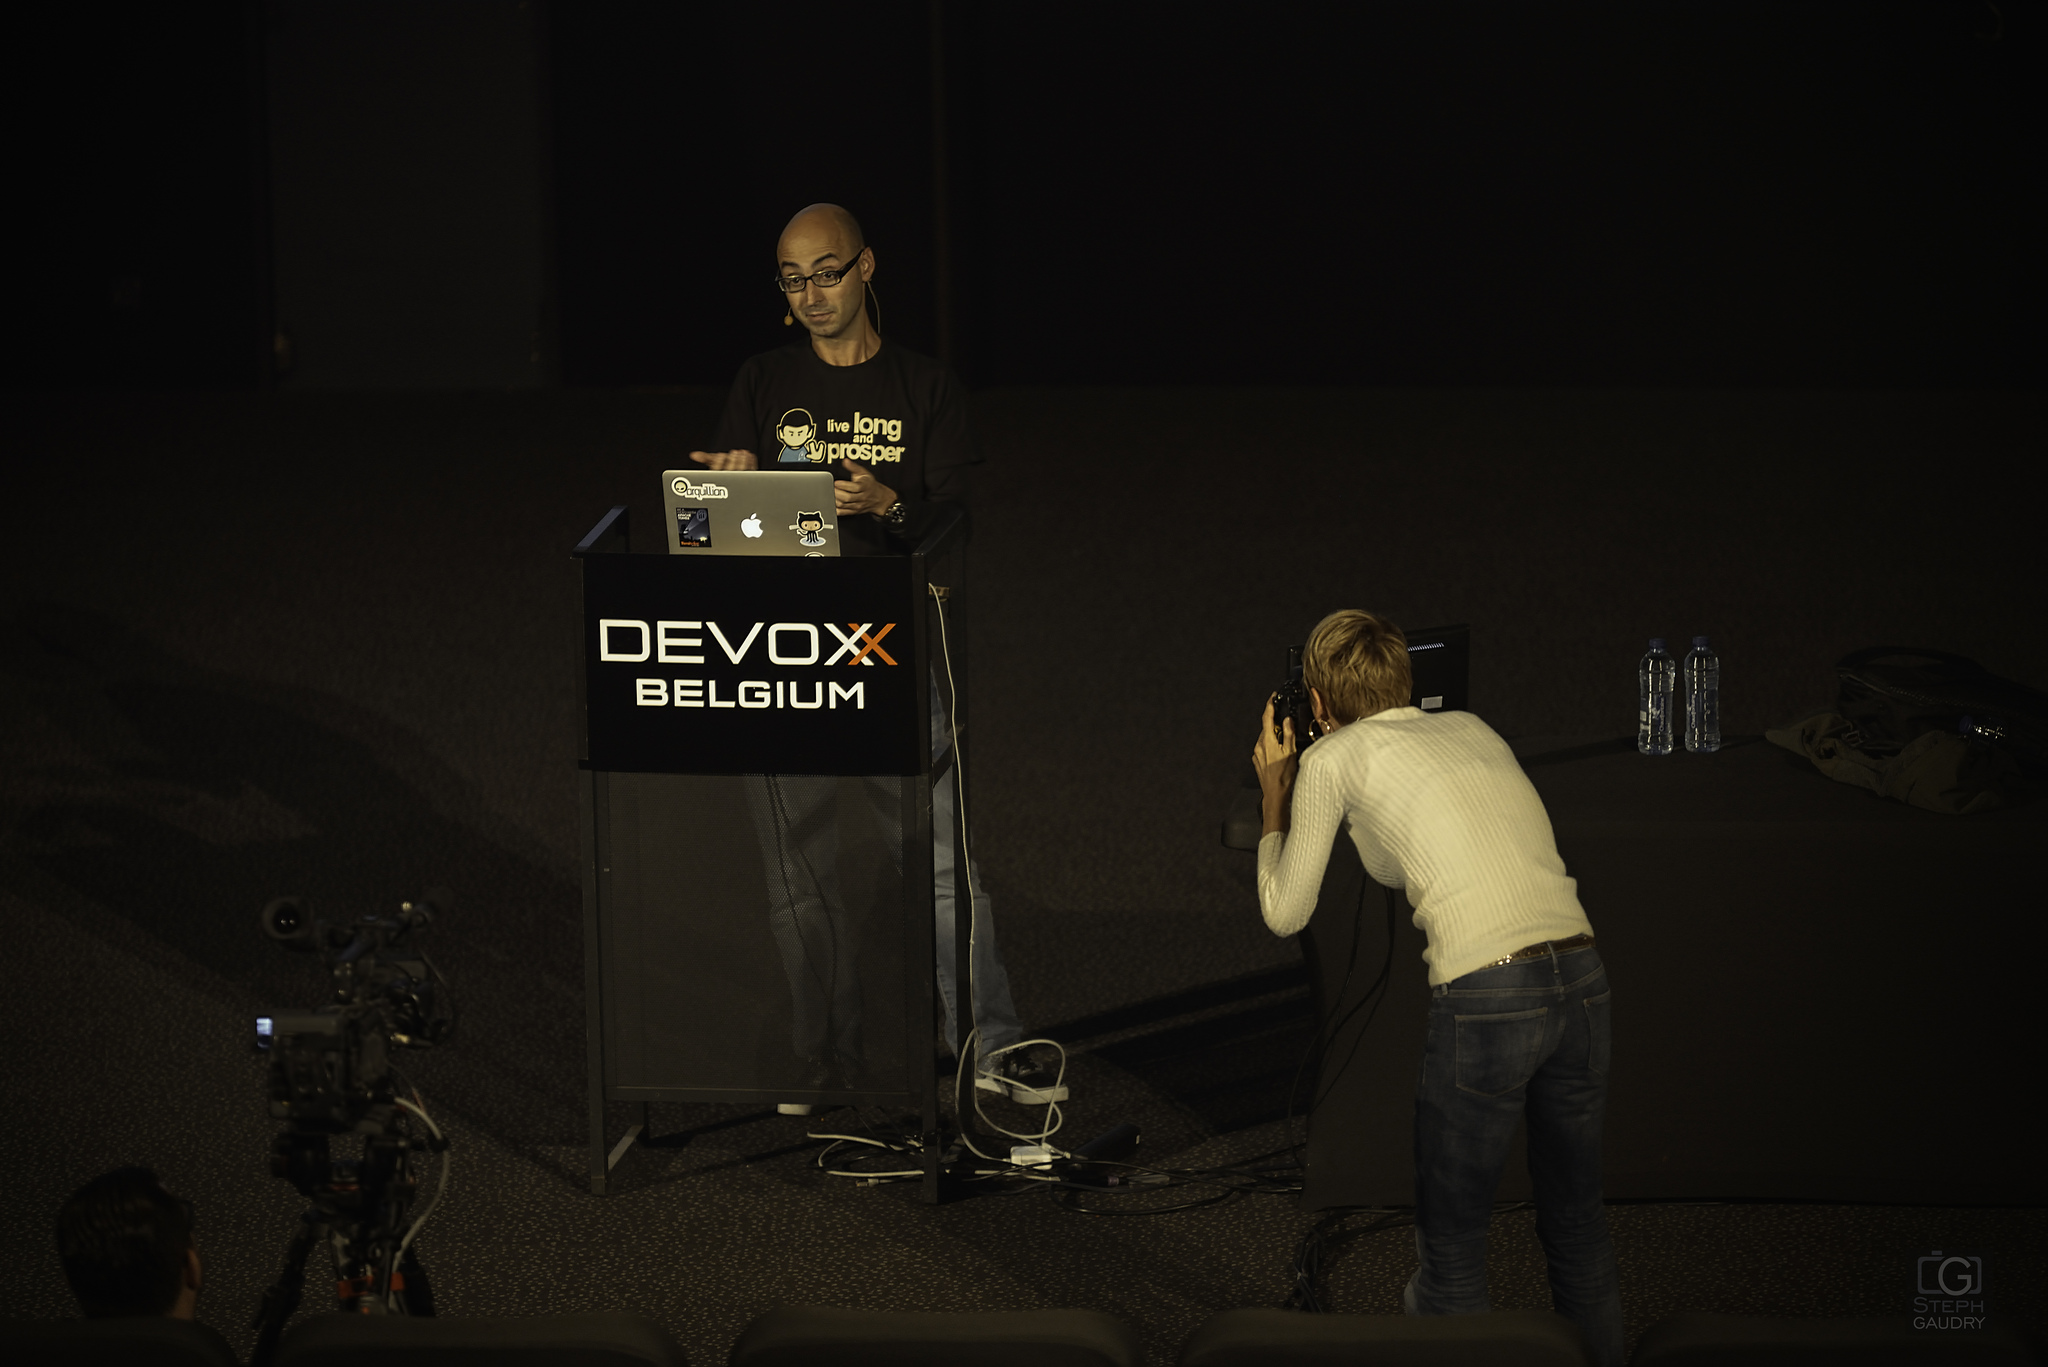 Alex Soto @ Devoxx2015... and the official photographer